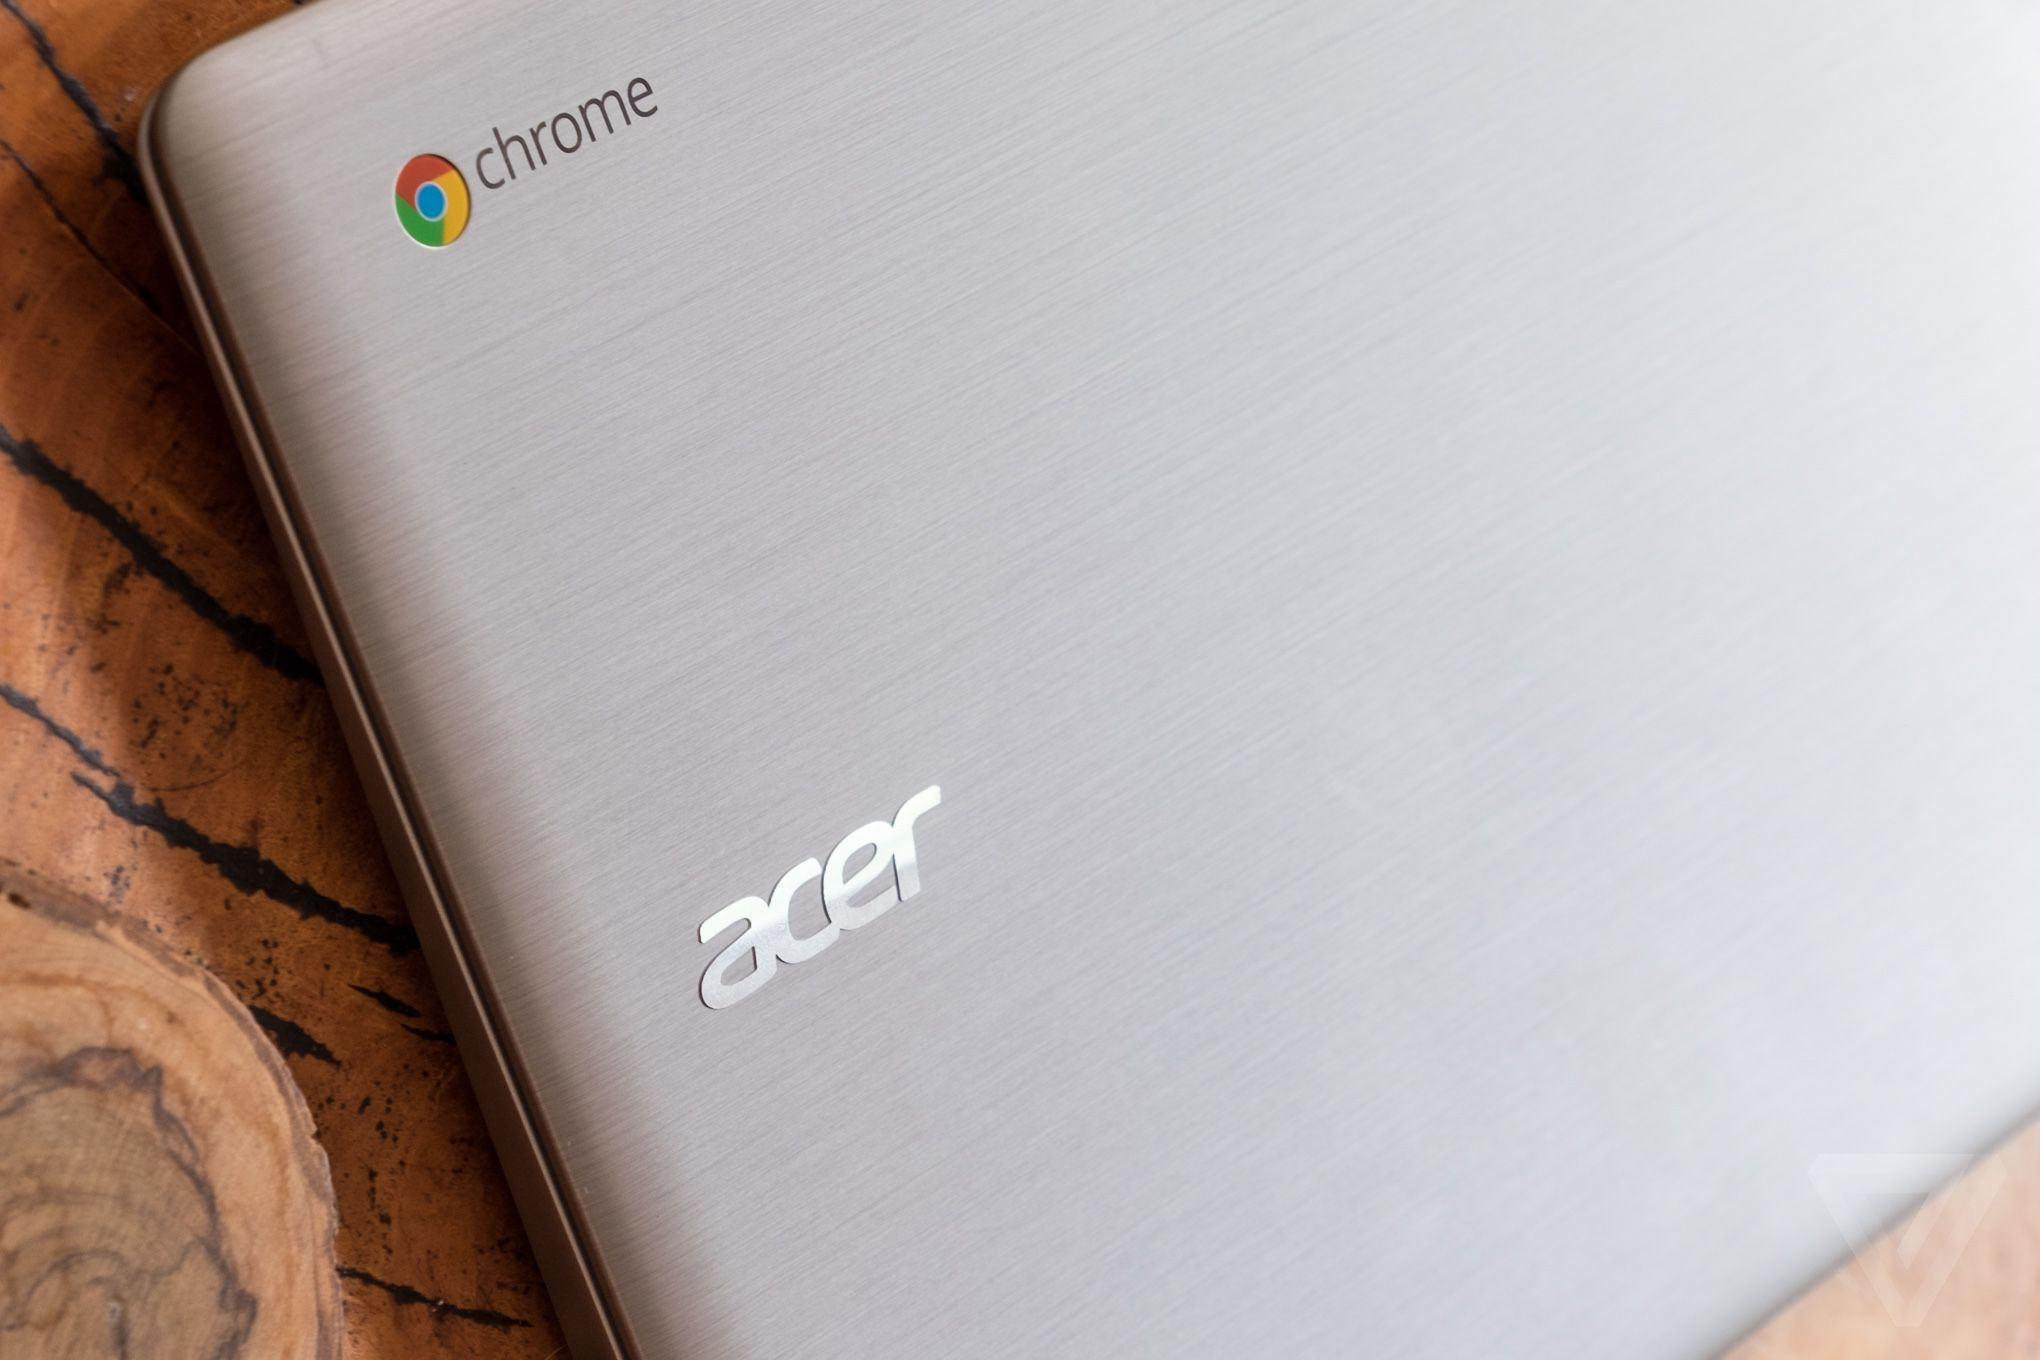 Acer Chromebook 14 review: a good value, but unprepared for the